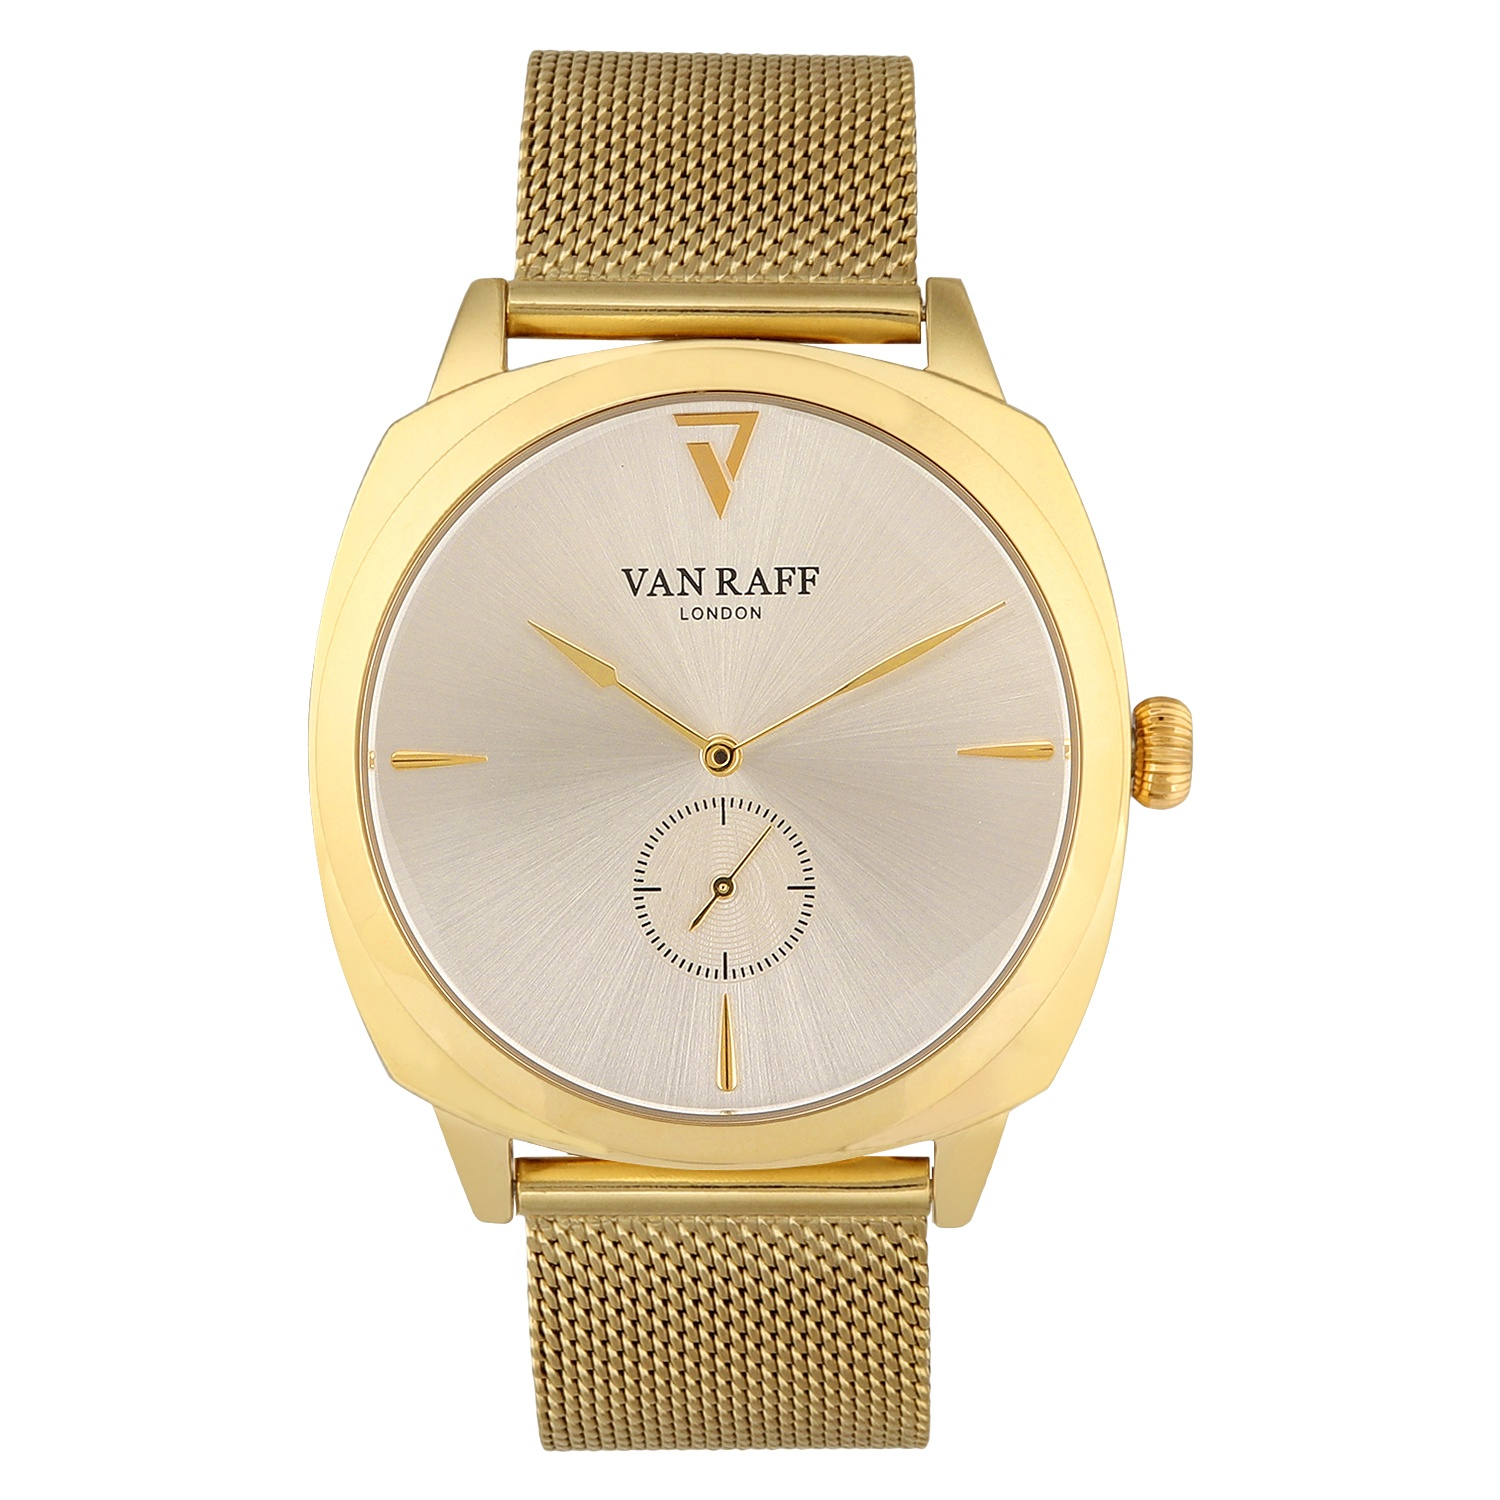 What Are The Best Watches Under 4000 In India Quora Casio Ltp 1378l 2e Women Quartz Watch Blue I Would Say Van Raff When It Comes To Value For Money Stunning Designs And Great Quality Their Website Is Vanraffcouk